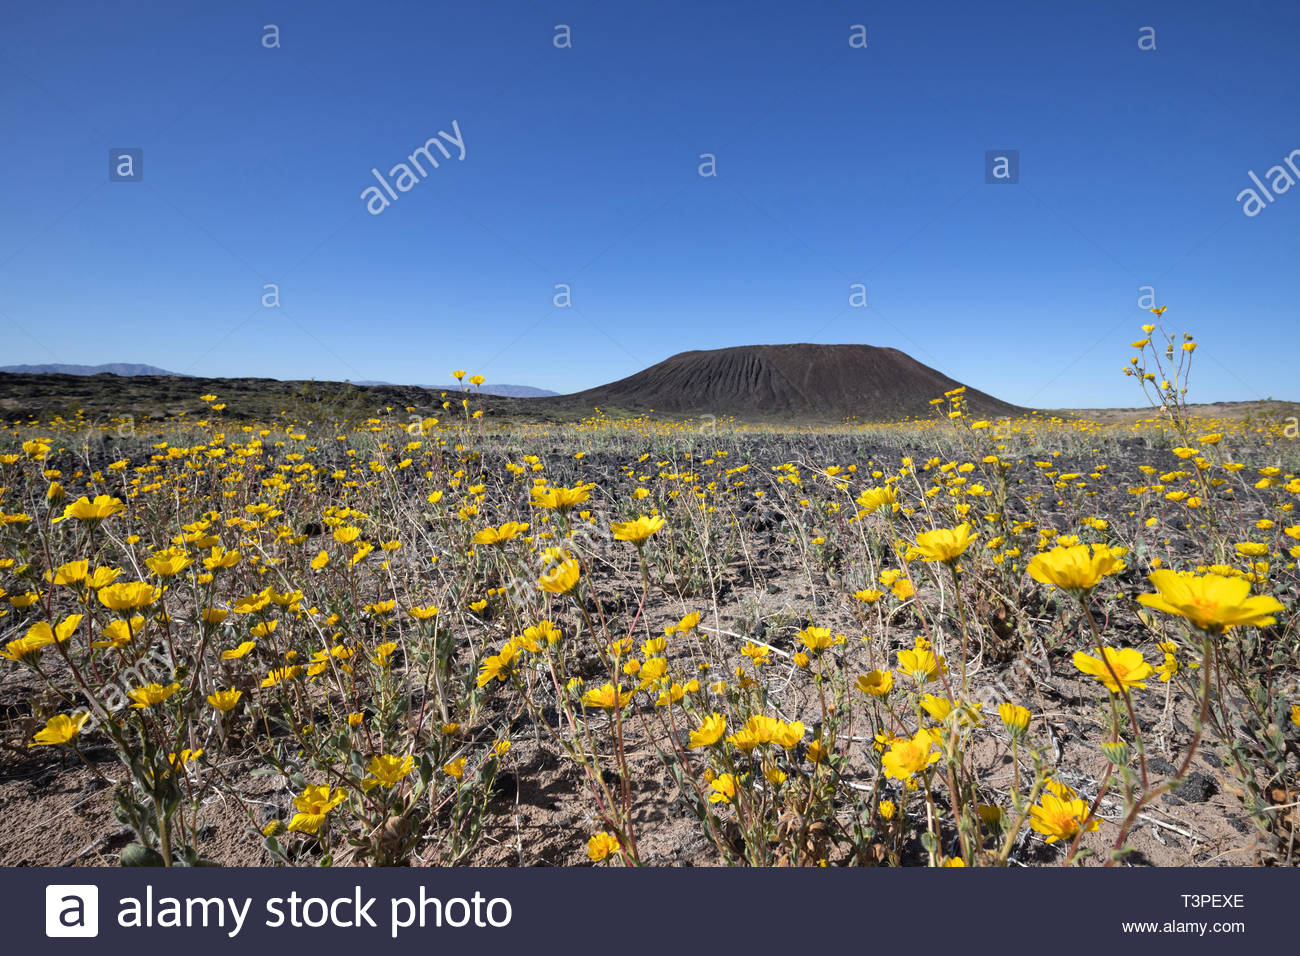 Desert Sunflower blooming in Amboy Crater, Mojave Trails National Monument, CA - Stock Image